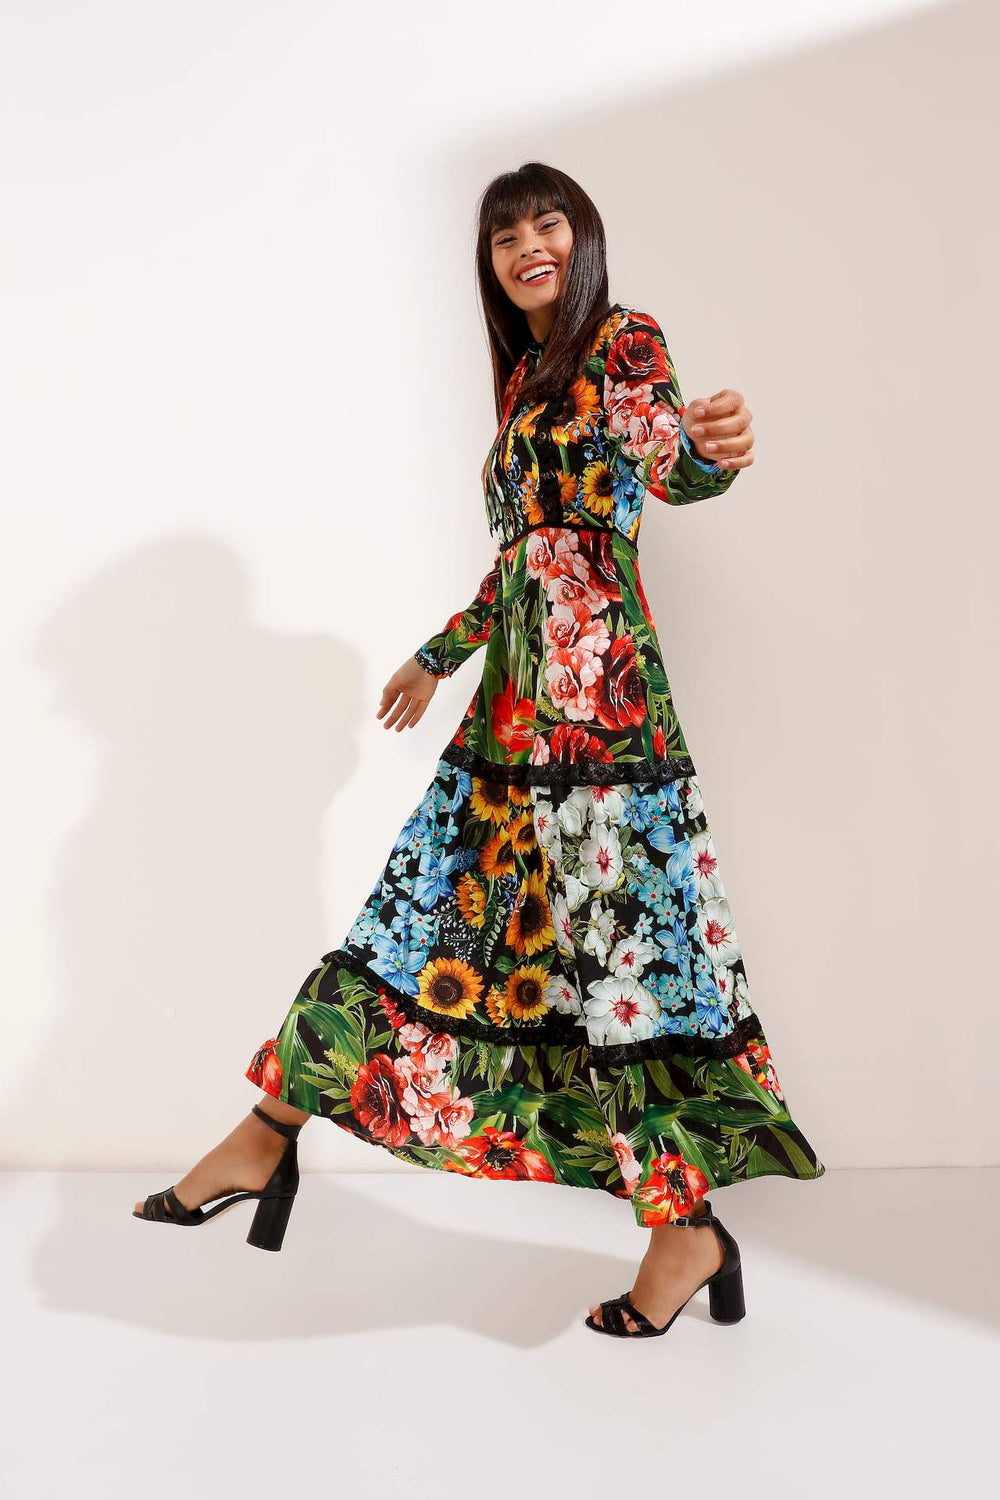 Store WF Multi-Colour Floral Pattern Maxi Dress Modest Loose Fitting Dress with Long Sleeves in Colourful Floral Prints in 100% Polyester